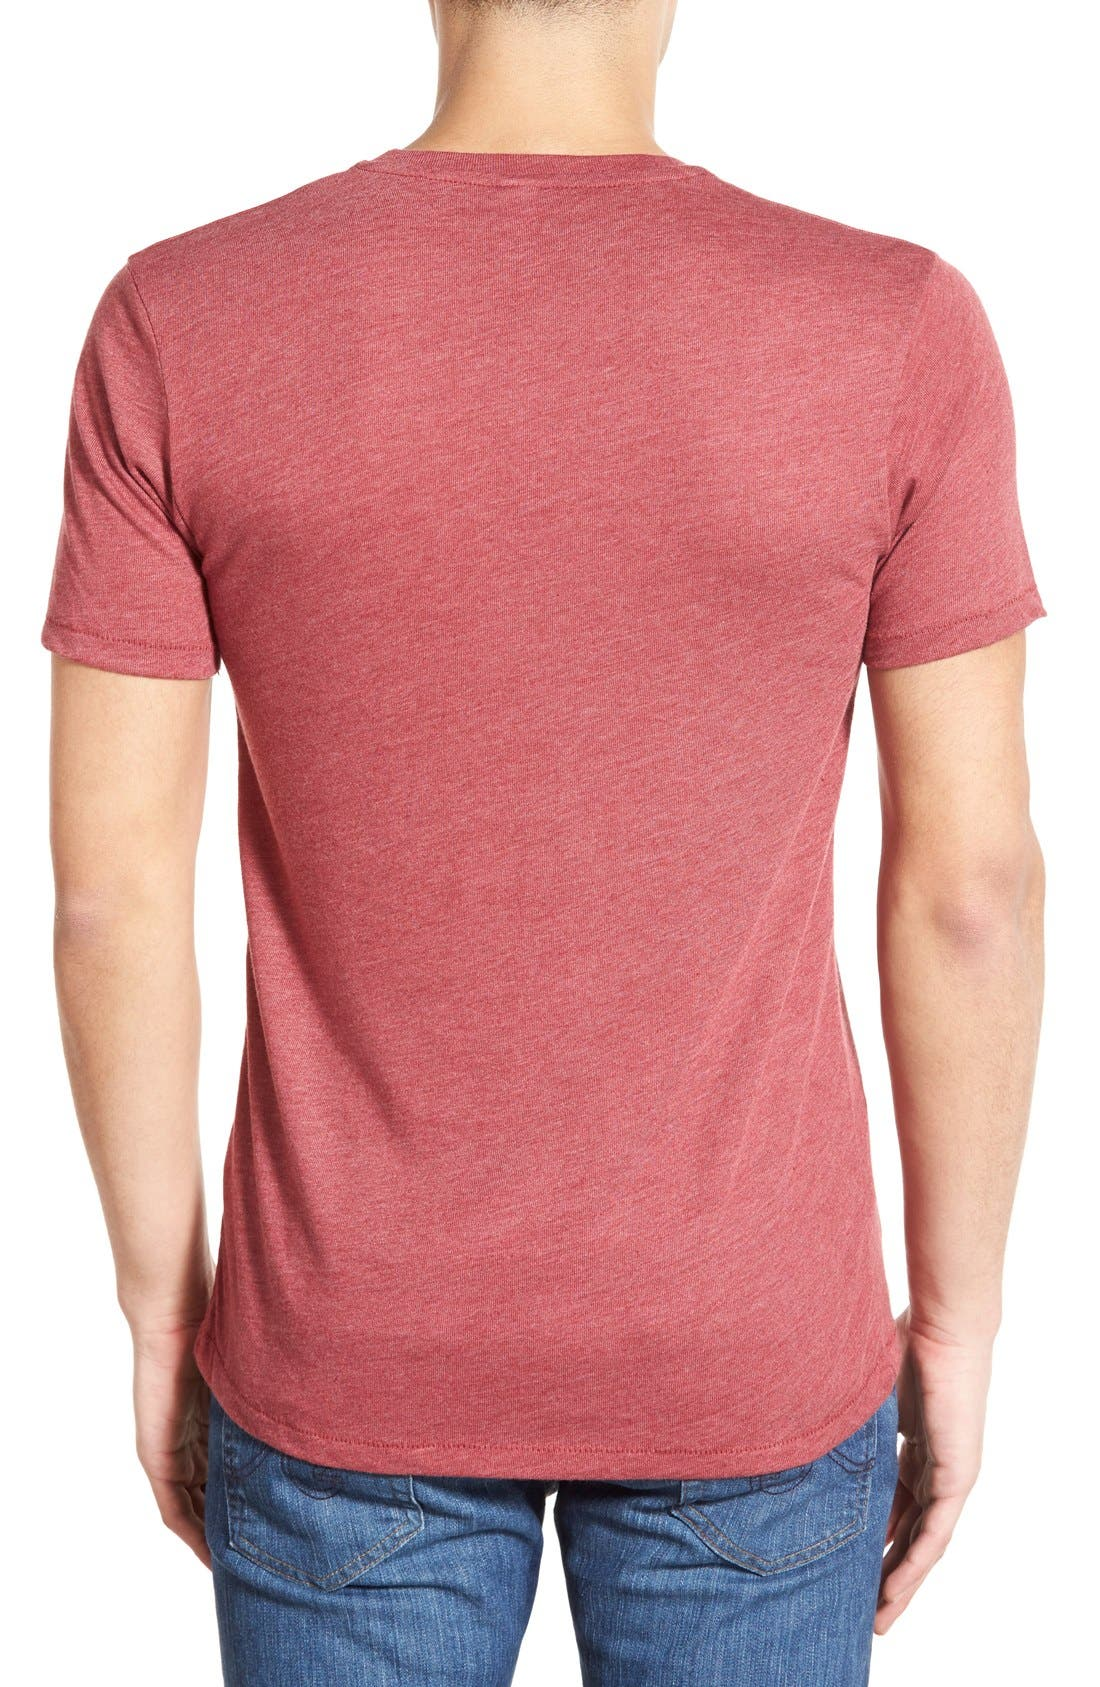 Alternate Image 2  - Alternative Heathered Trim Fit V-Neck T-Shirt